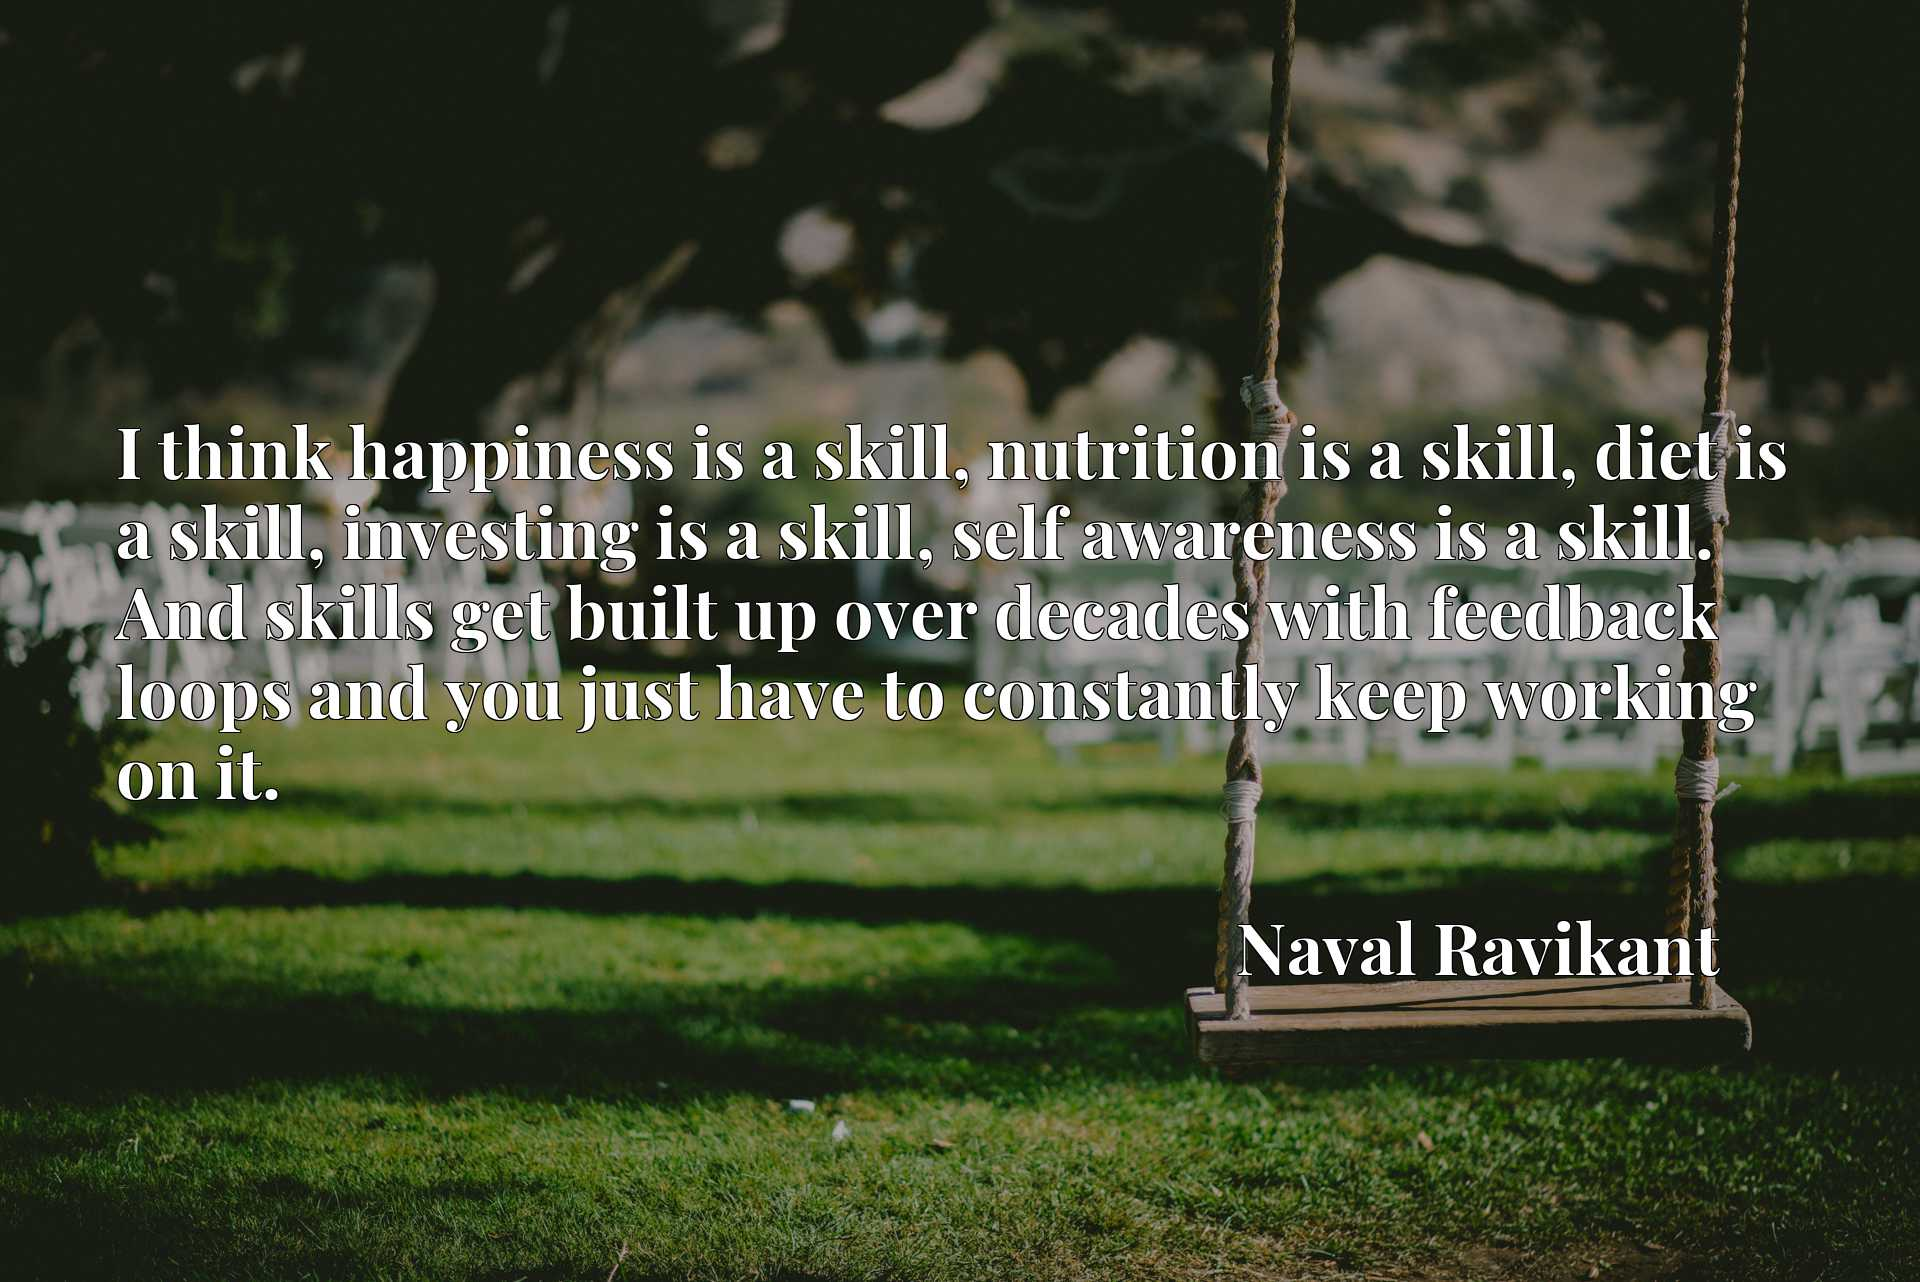 I think happiness is a skill, nutrition is a skill, diet is a skill, investing is a skill, self awareness is a skill. And skills get built up over decades with feedback loops and you just have to constantly keep working on it.